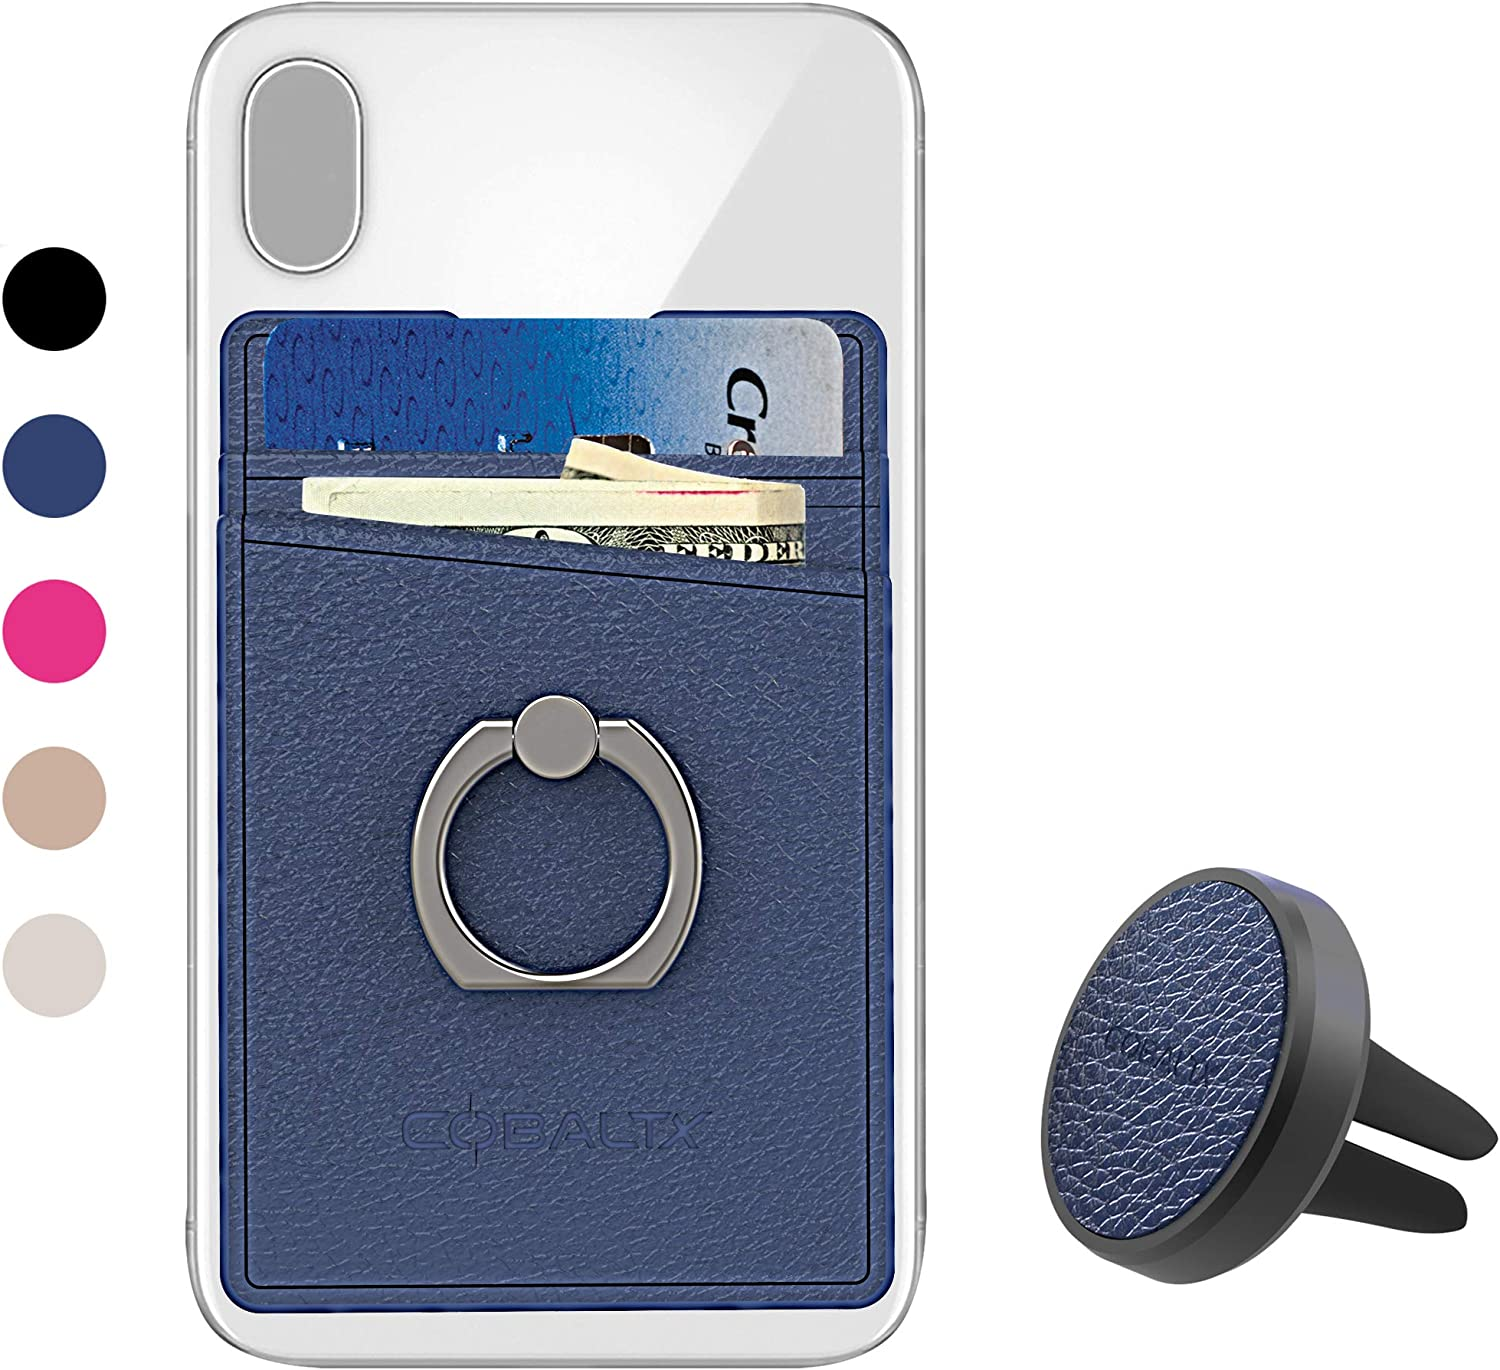 COBALTX Leather Cell Phone Ring Wallet Adhesive and Matching Magnetic car Vent Mount Card Holder Back of Phone All in one Combo Wallet Ring Grip Kick Stand Phone Wallet Stick on with Ring Black2